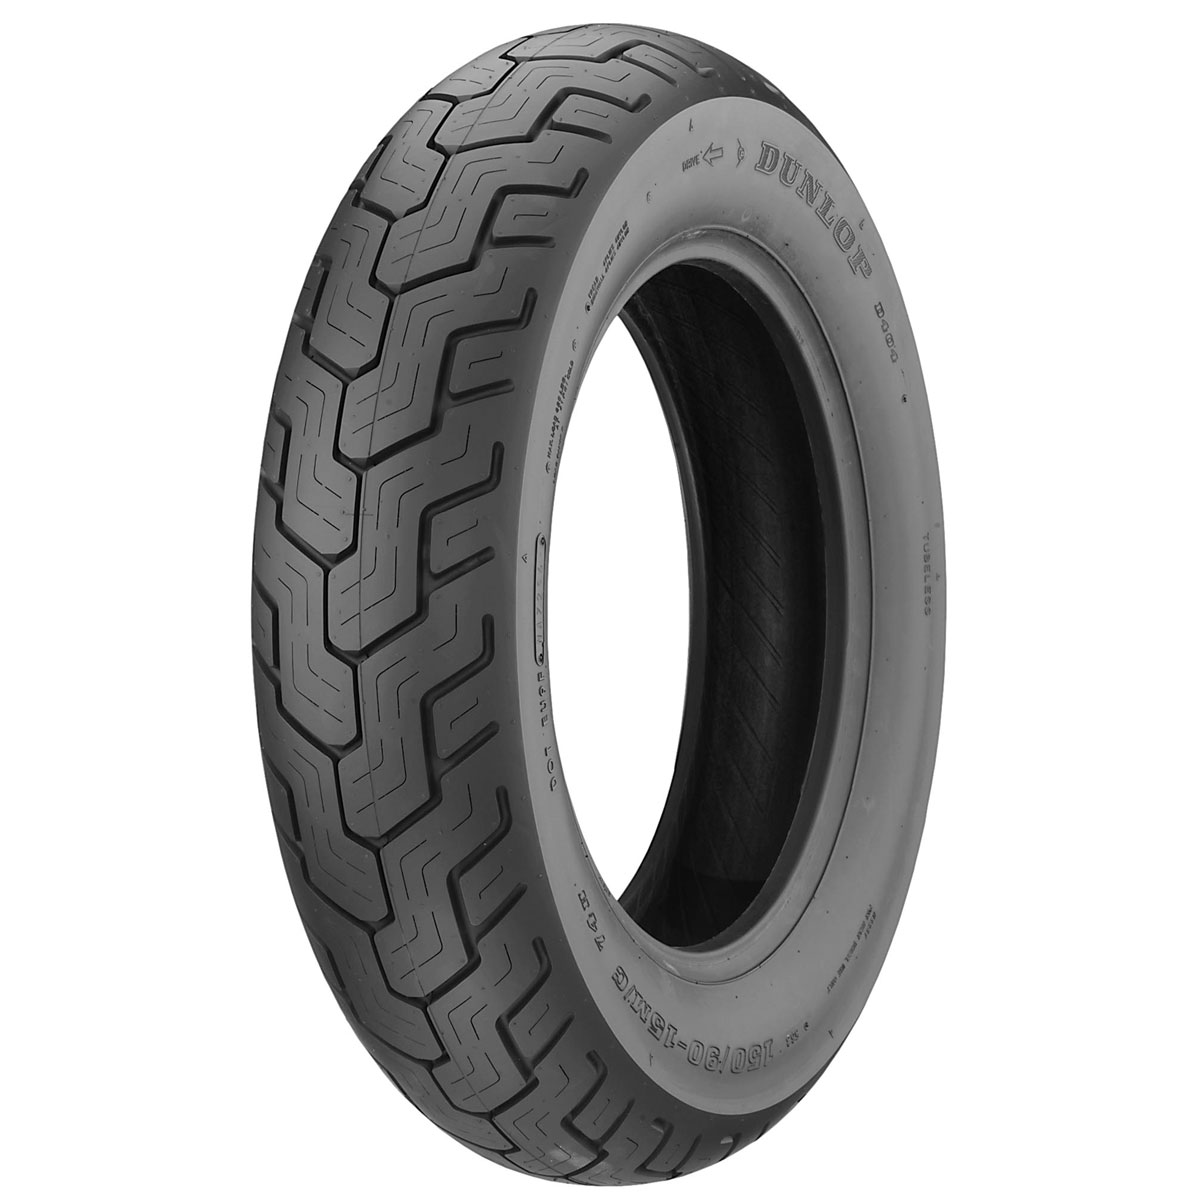 DUNLOP 140/90-16 D404 71H Tubeless (Brand of EU/Made in Indonesia)